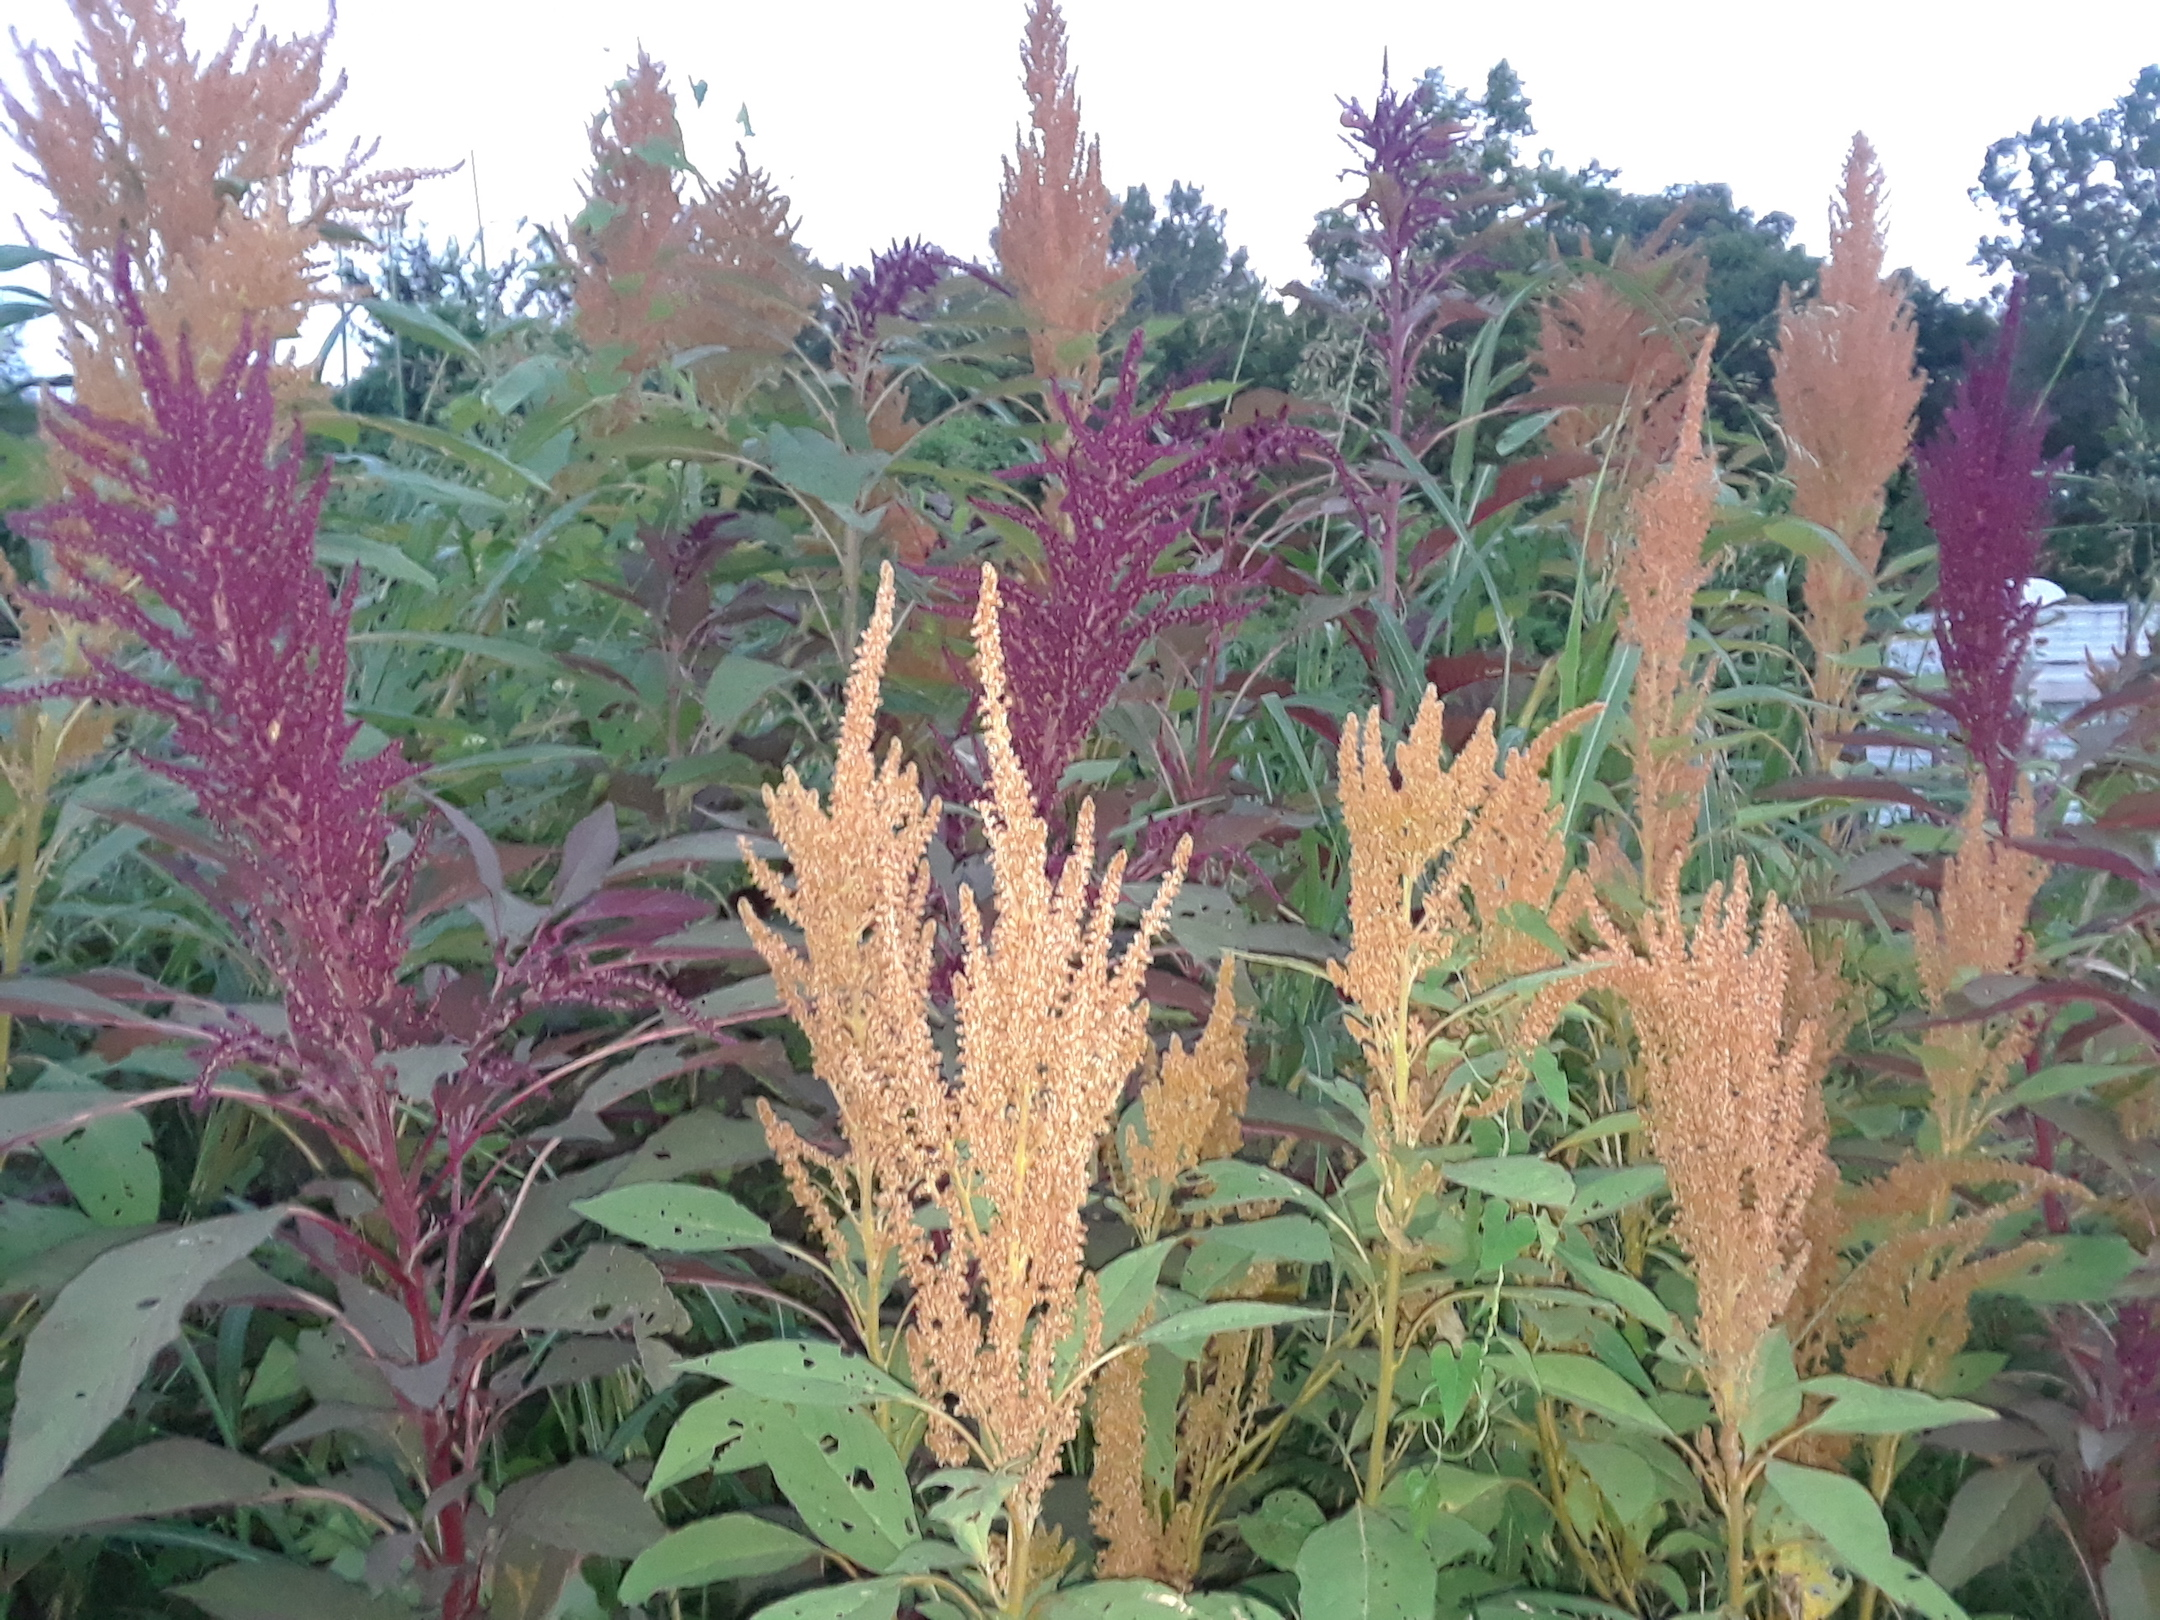 Here is a very abundant crop of red and golden amaranth, this ancient grain was grown specifically for the chickens! These flowers yield up to 1 lb of seeds that can be used for human or animal consumption, amaranth is considered a superfood!